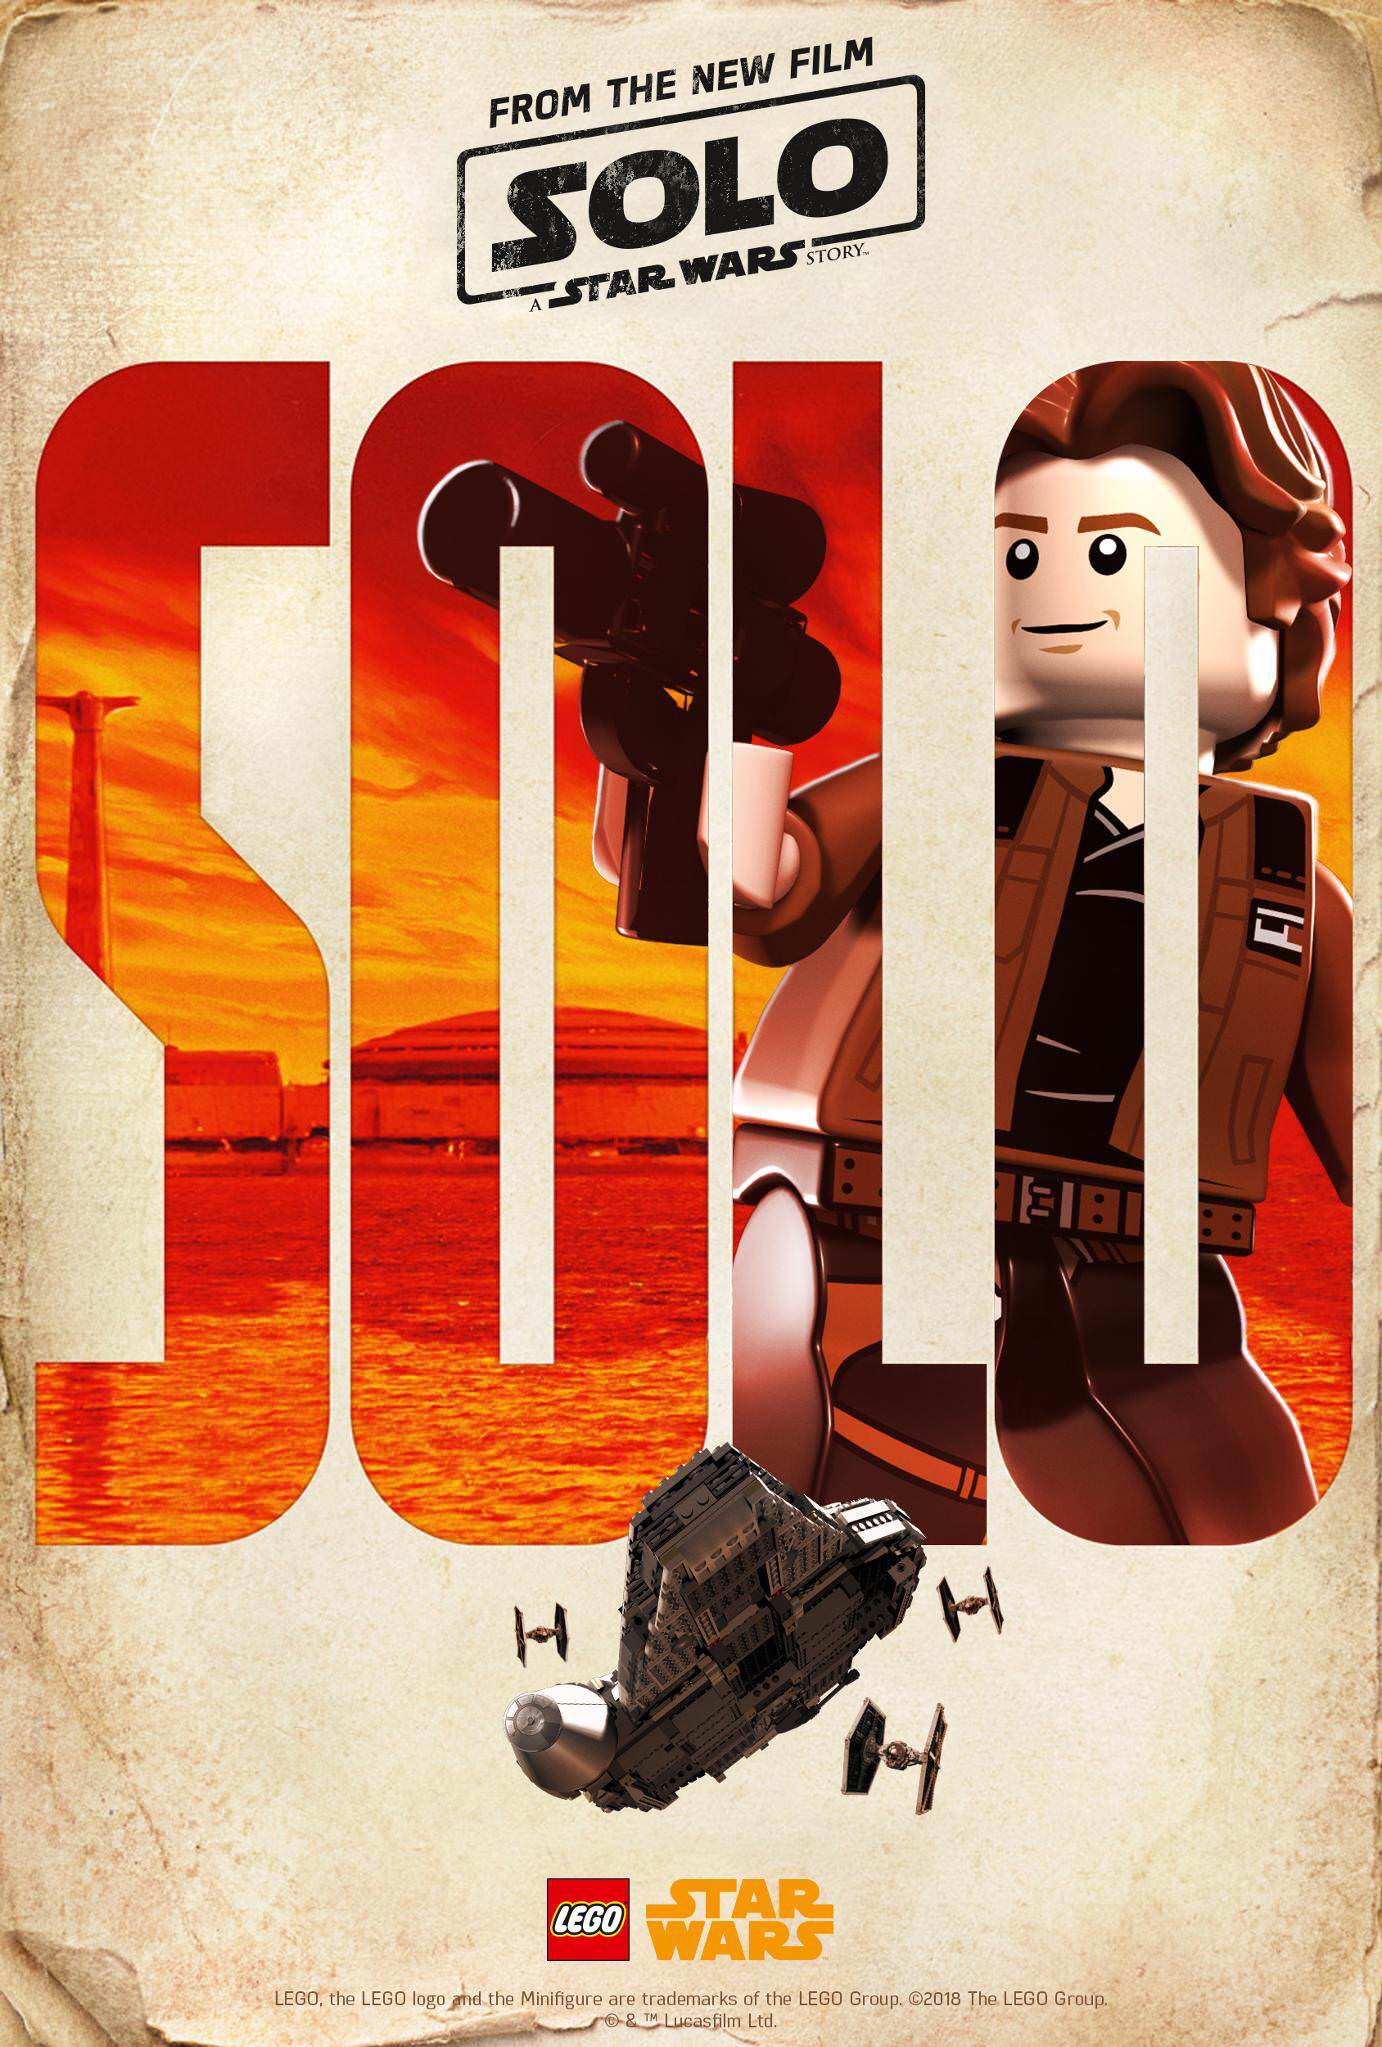 LEGO Solo: A Star Wars Story poster